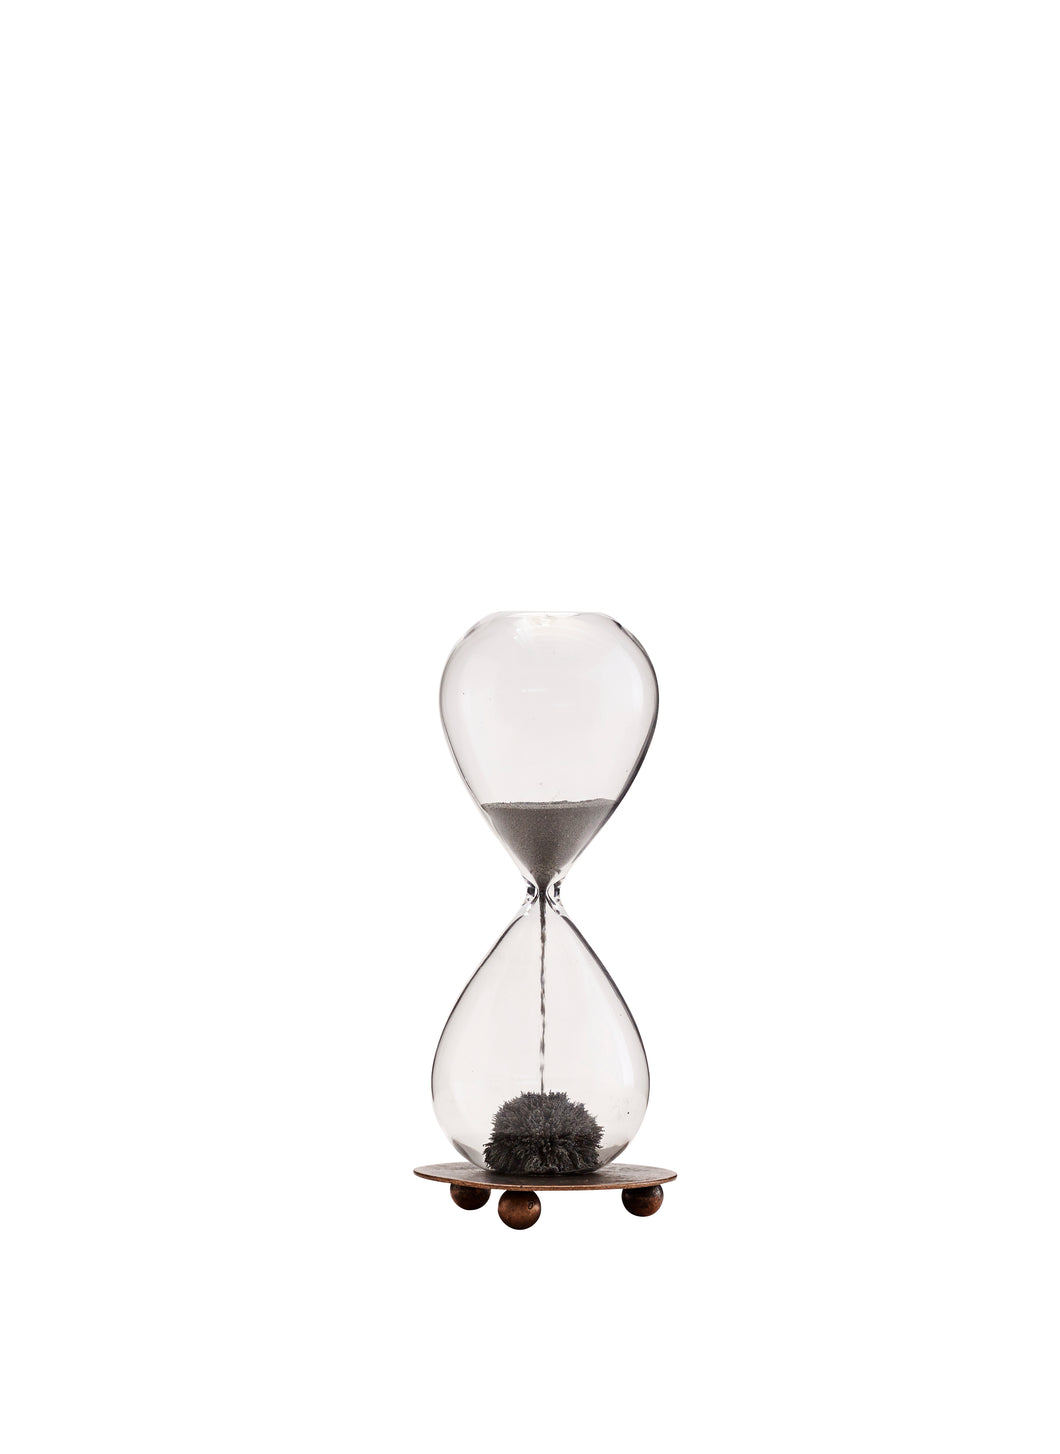 Hourglass w/magnet and tray